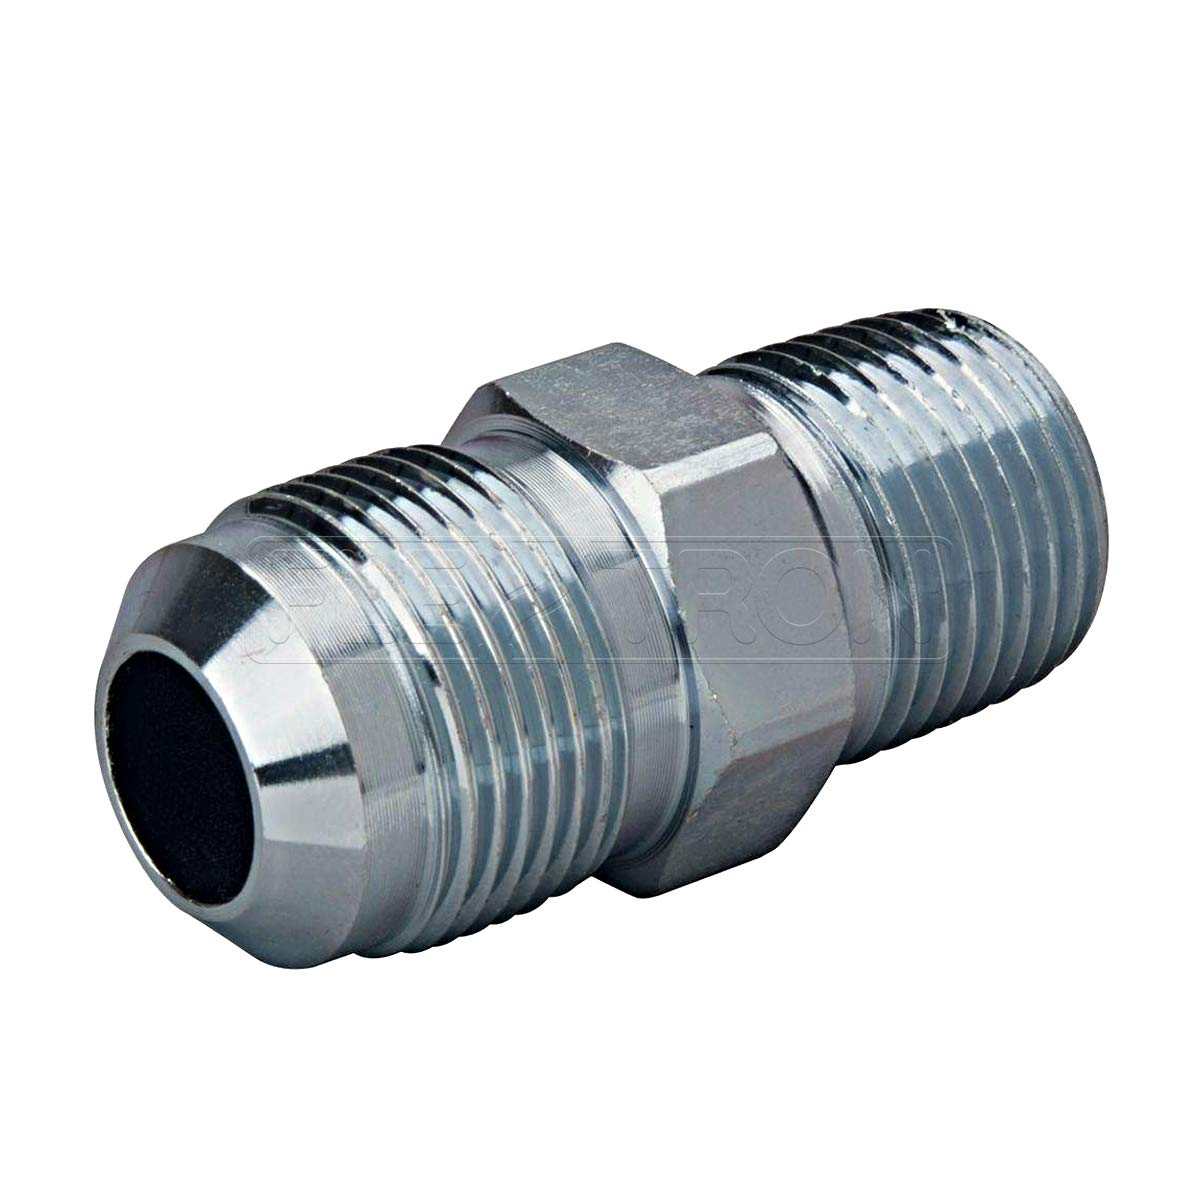 Flextron FTGF-12M12 Gas Connector Adpater Fitting with 1/2 Inch Outer Diameter Flare Thread x 1/2 Inch MIP (TAPPED 3/8 Inch), Uncoated Stainless Steel, for Dryer & Water Gas Connectors